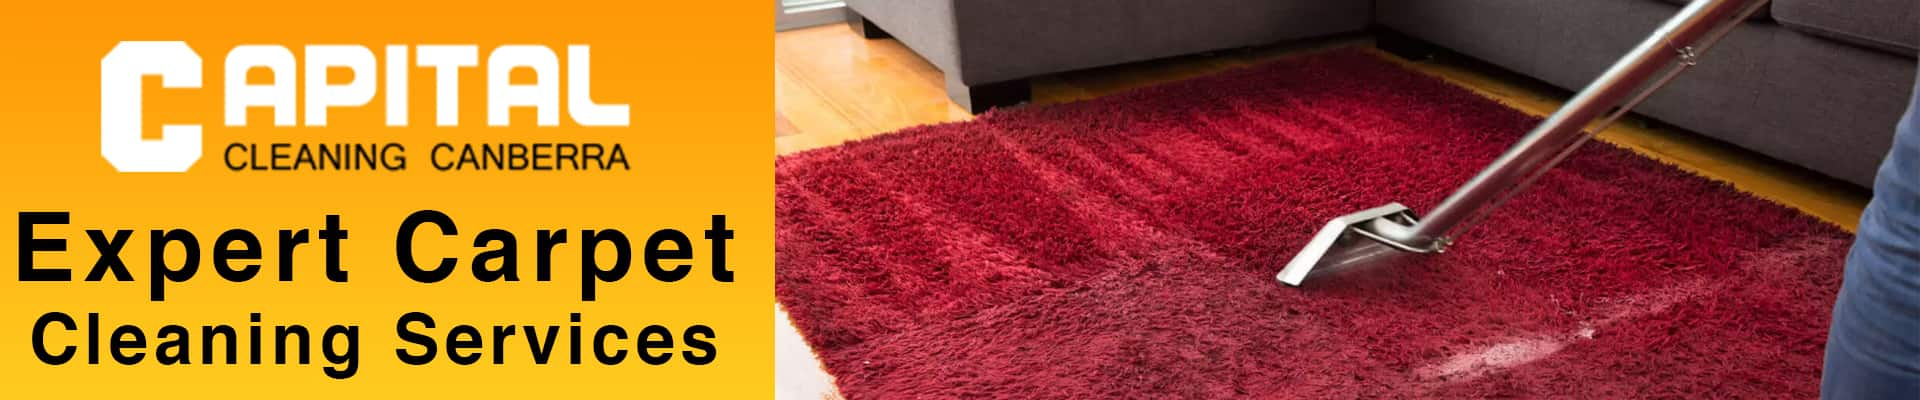 Expert Carpet Cleaning Services Burra